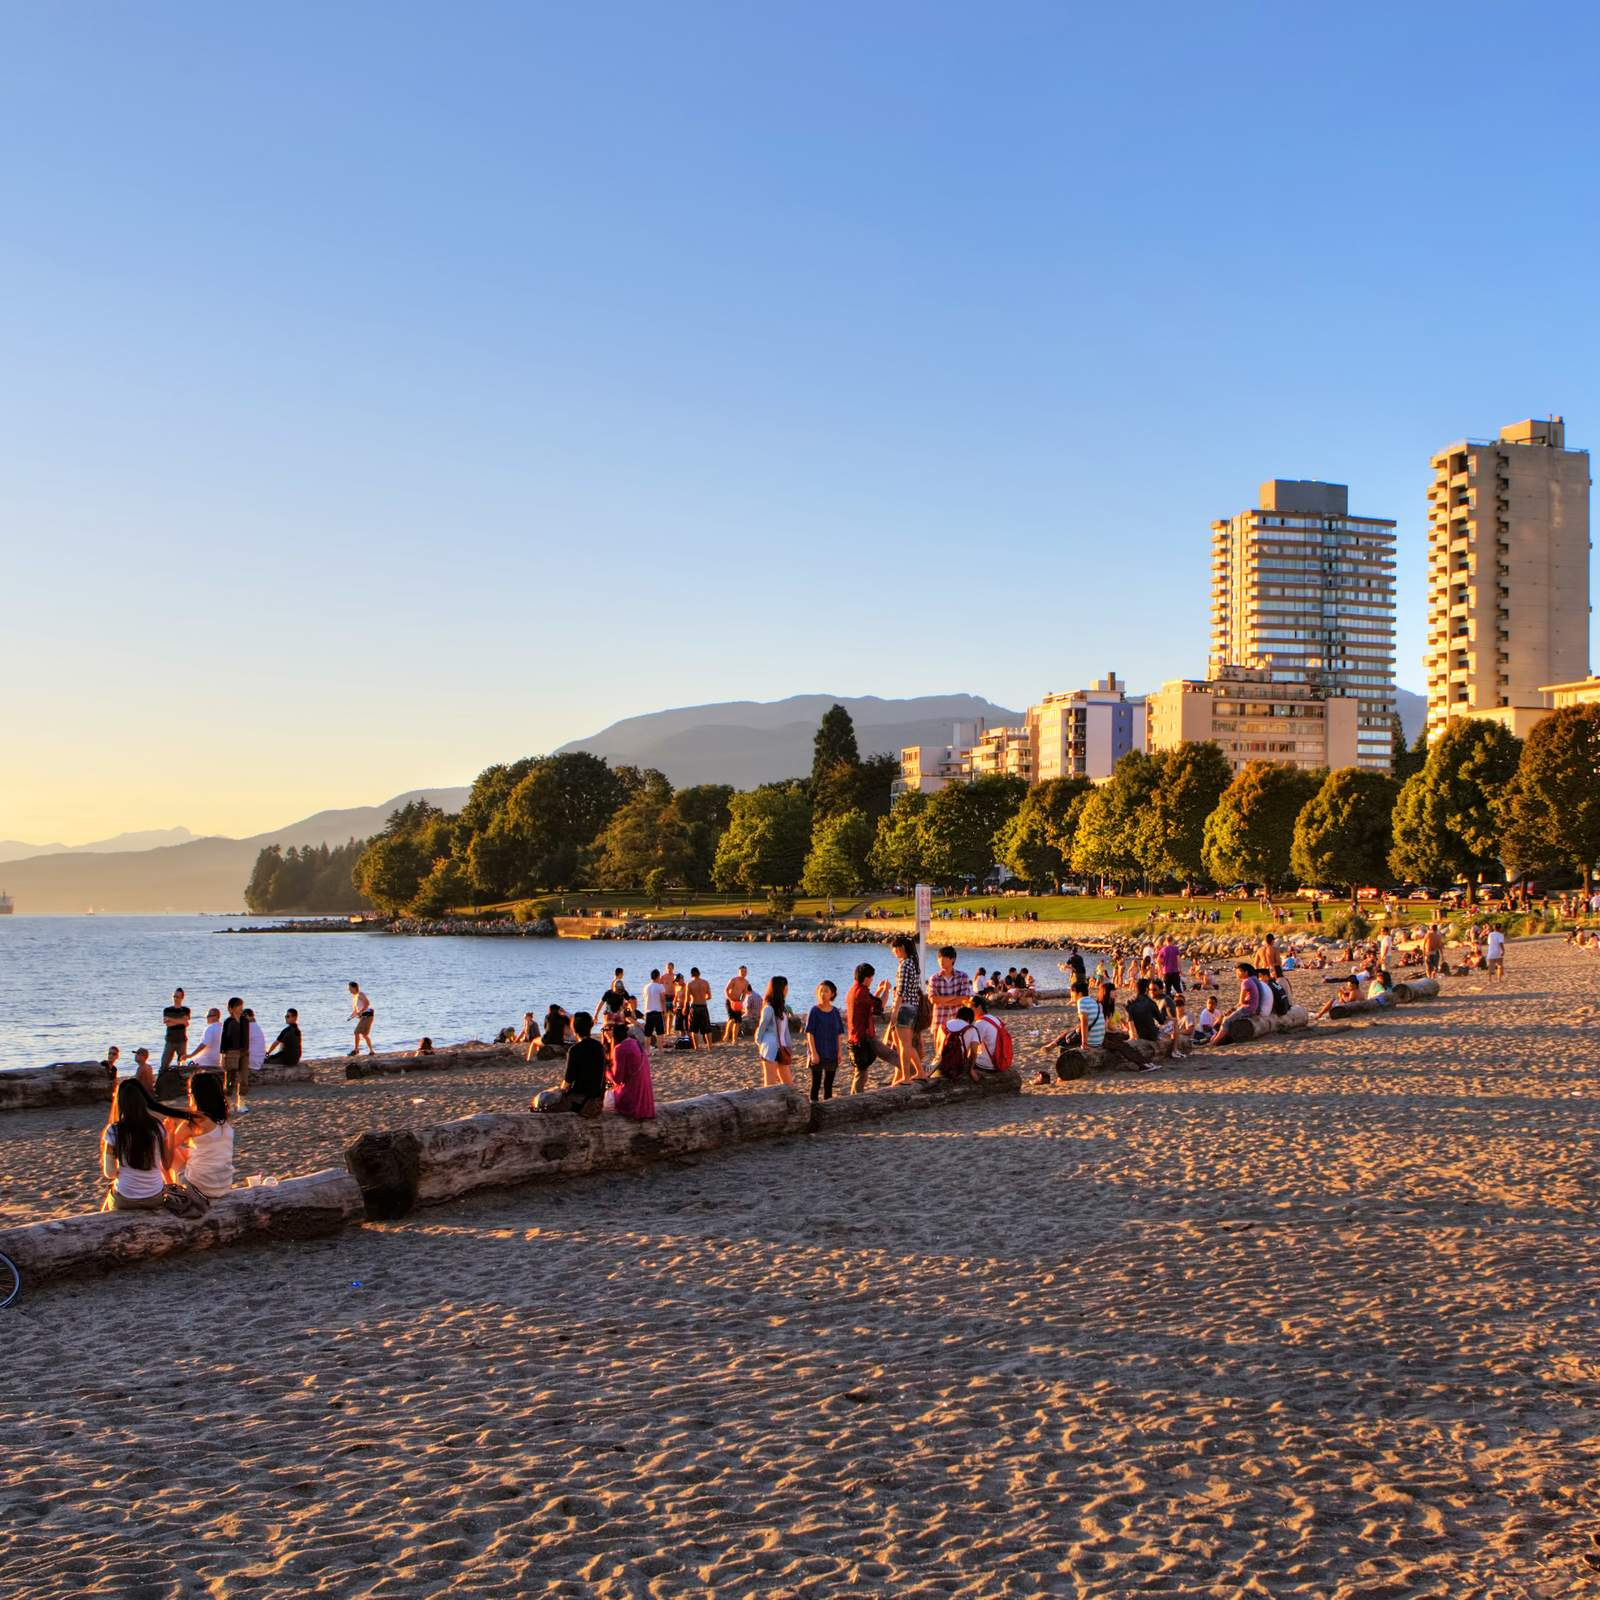 Sonnenuntergang an der English Bay in Vancouver, British Columbia